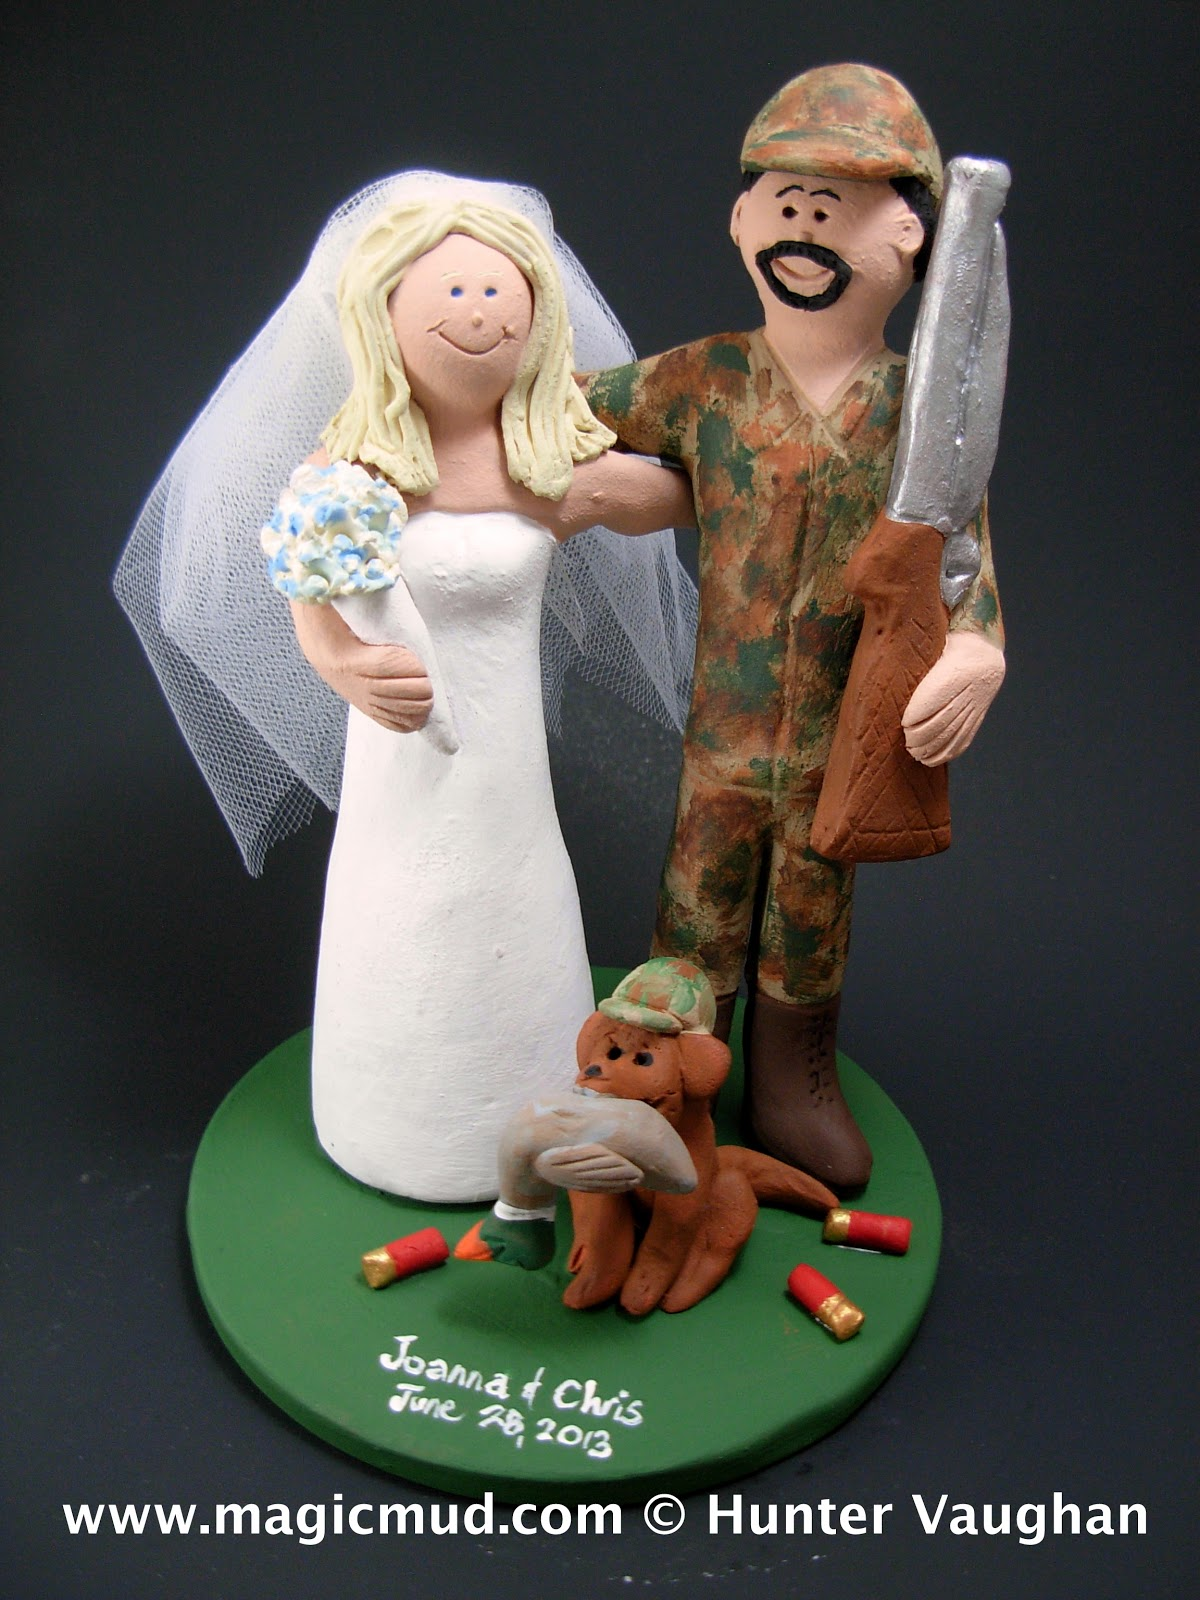 Groom in Camouflage Wedding Cake Topper